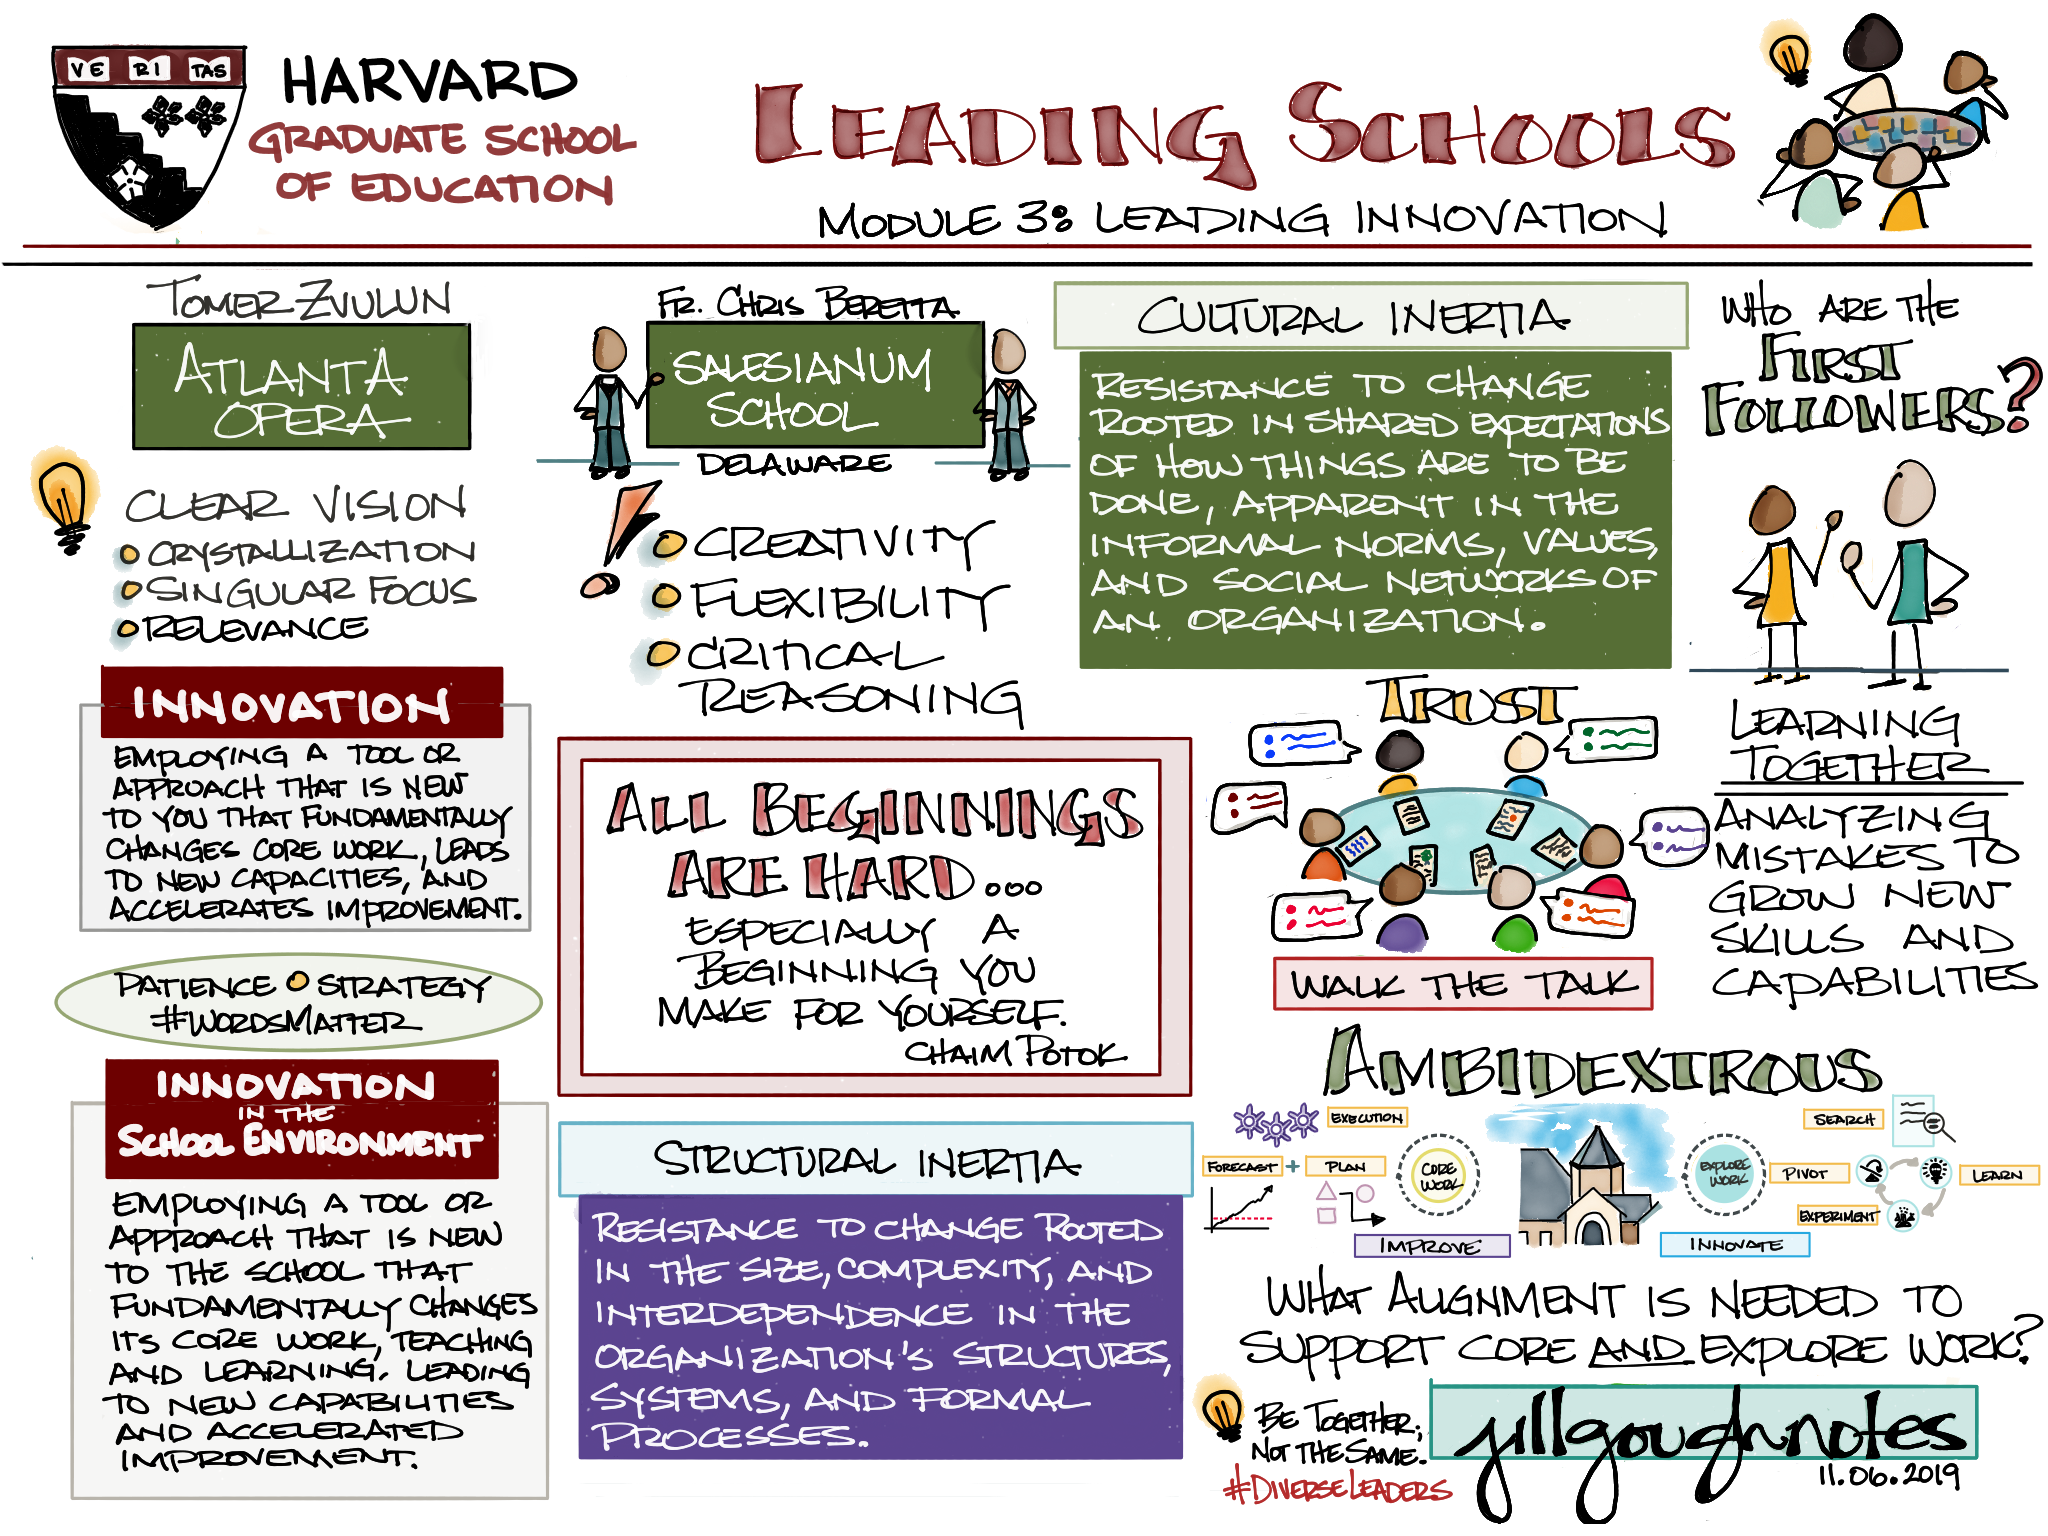 @HGSE & @HarvardHBX Leading Schools – Module 3: Leading Innovation